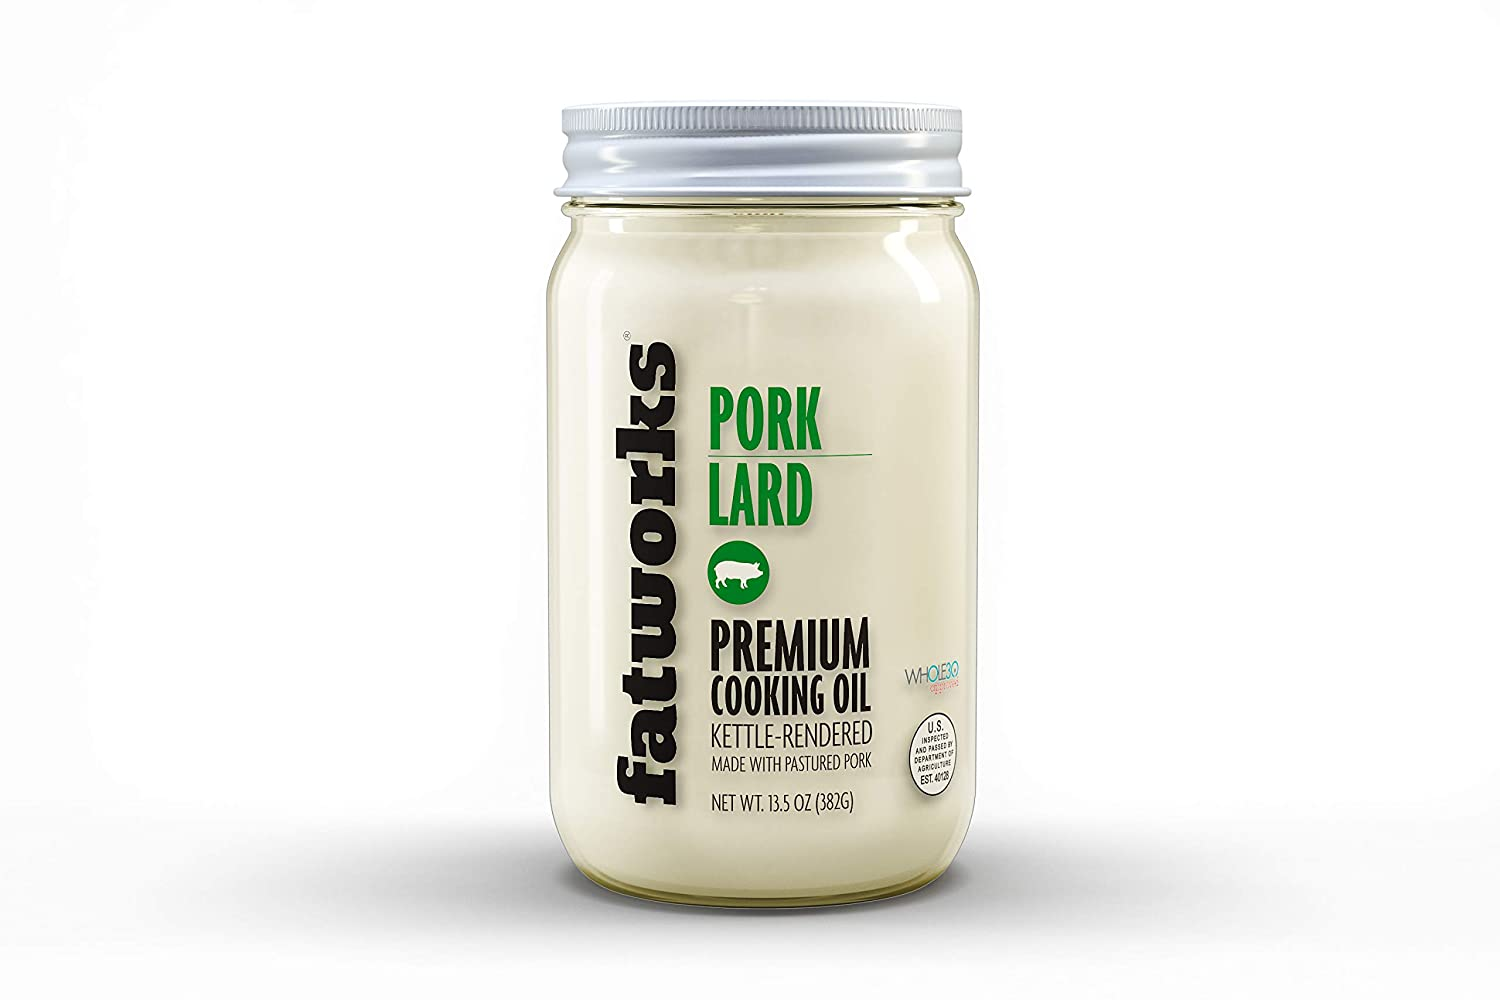 Fatworks USDA Premium Pasture Raised Pork Lard, Sourced Exclusively from U.S. Small Family Farms, WHOLE30 APPROVED, KETO, PALEO, 14 oz.